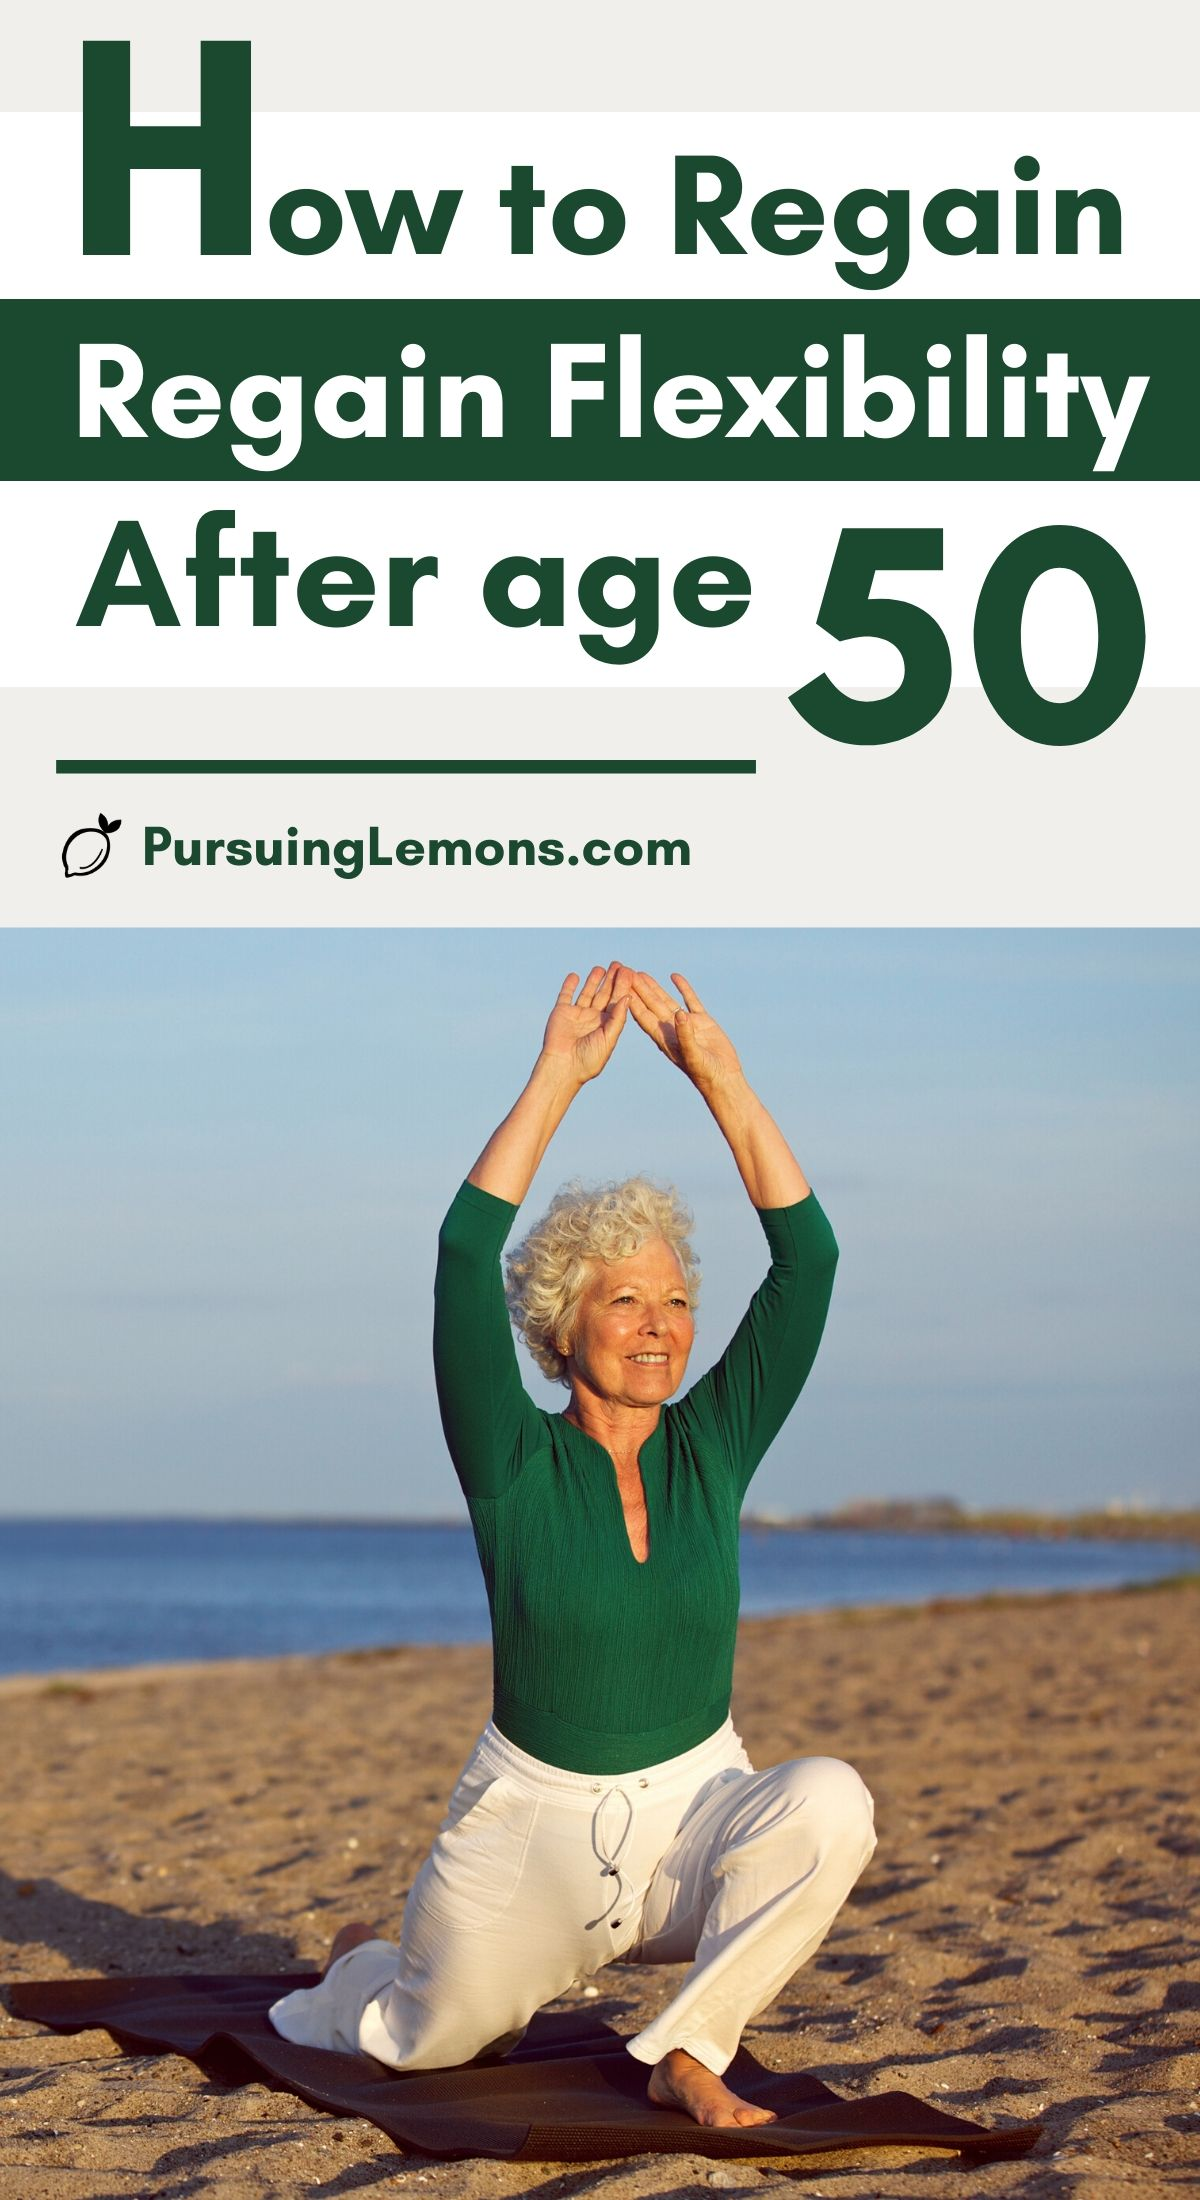 How To Regain Flexibility After 50 | Don't let old age affect your health! Aging can cause our bodies to be less flexible which leads to more body pains. Here are yoga poses & yoga stretches you can practice daily to regain flexibility even if you're over 50. Increasing your flexibility can help to relieve and prevent back pain, neck pain, and improve posture. #yoga #flexibility #yogaposes #regainflexibility